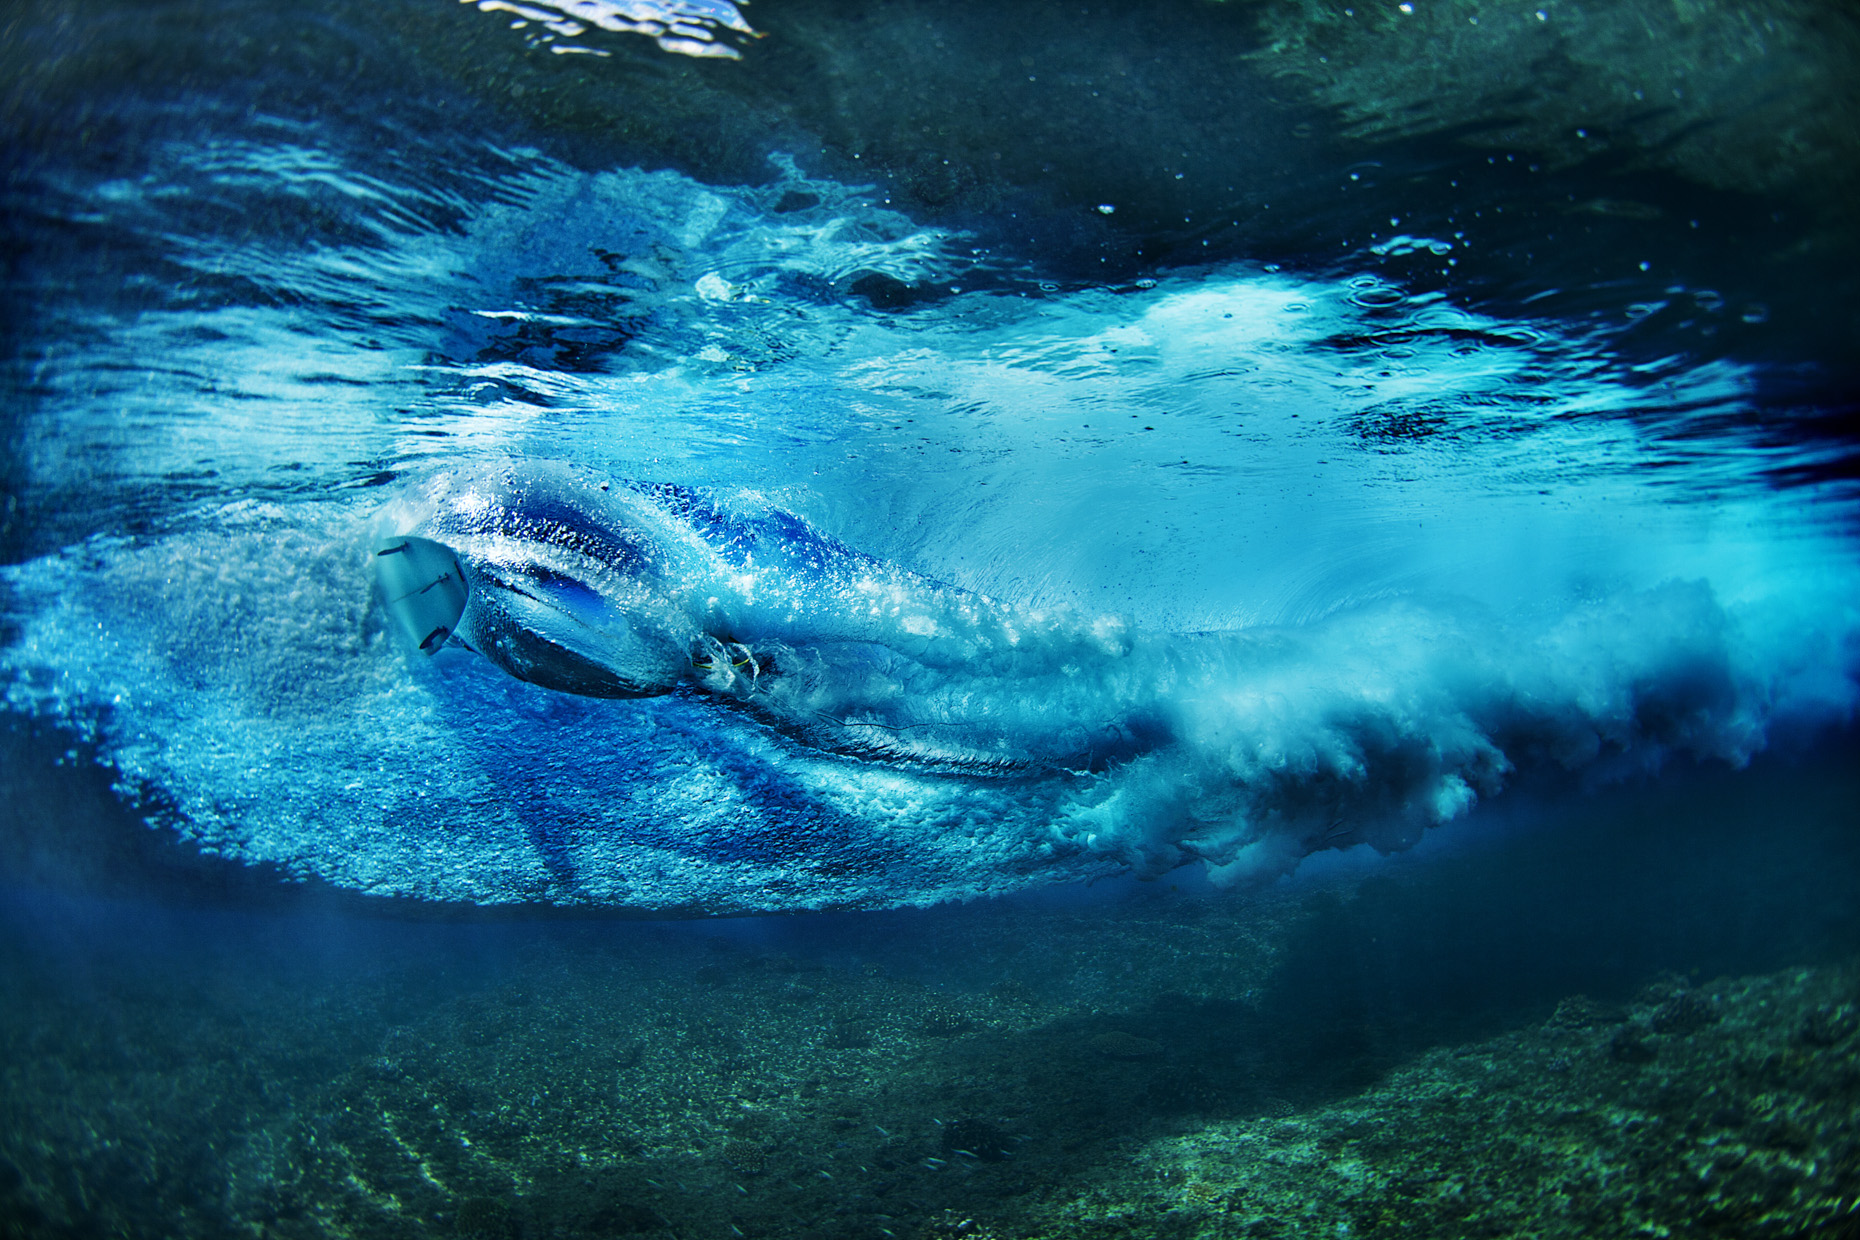 Underwater surfer in Indonesia by Boston based commercial sports photographer Brian Nevins